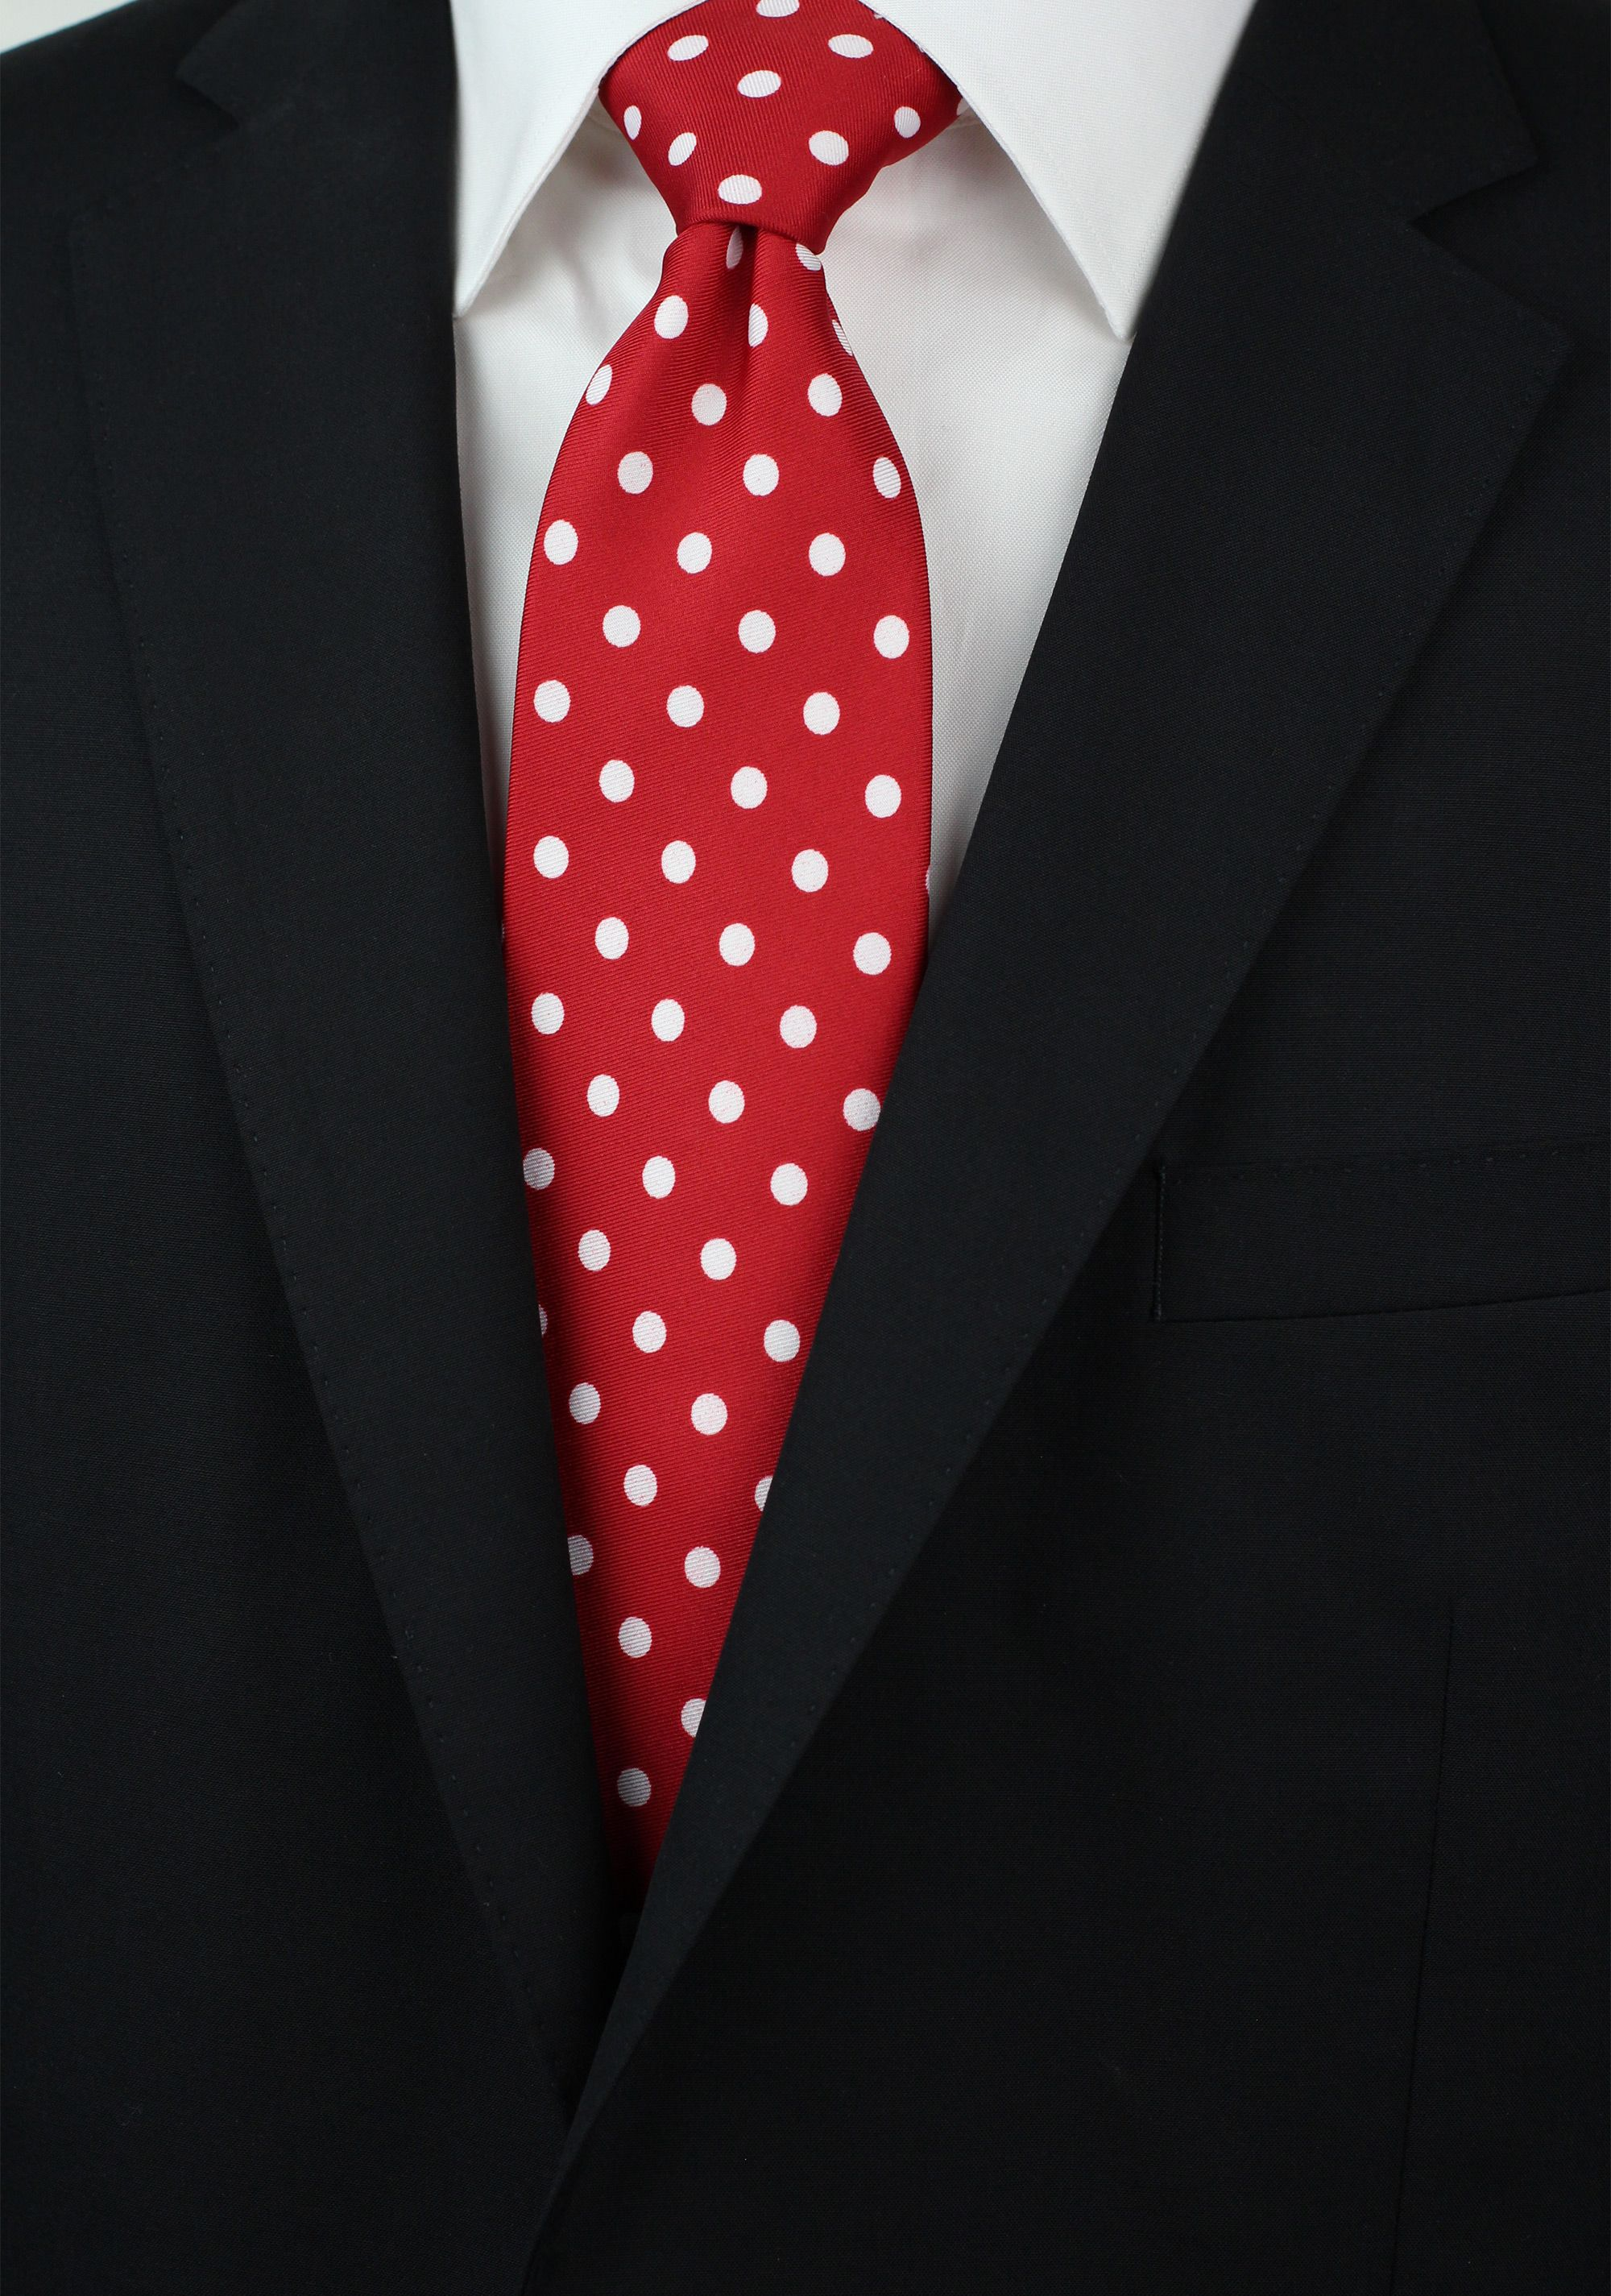 27d7ac856ebab Tomato Red Mens Tie with White Polka Dots | Bows-N-Ties.com in 2019 ...